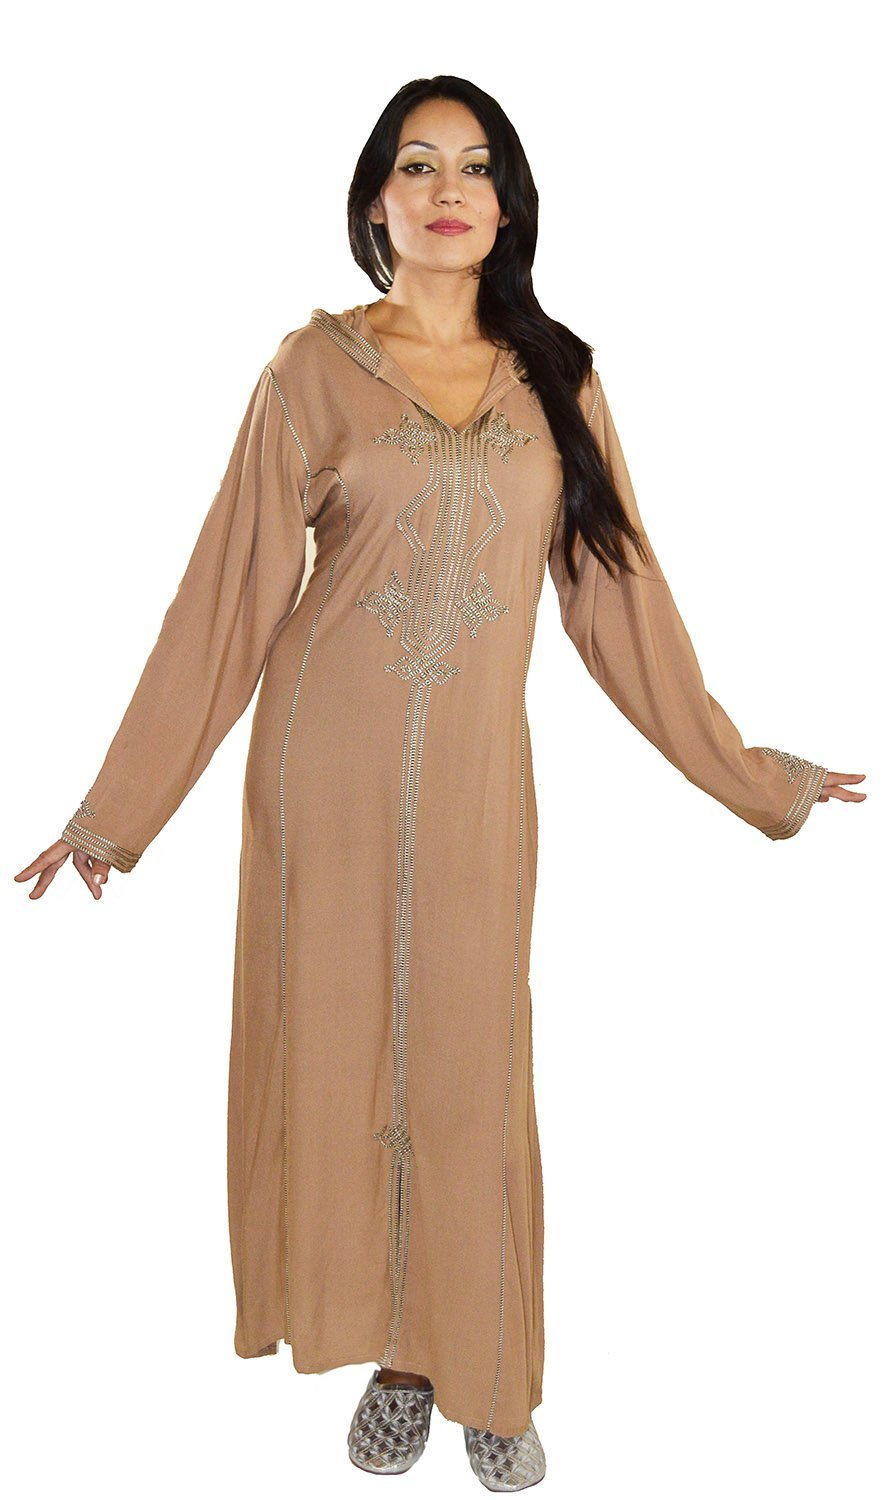 Moroccan Caftans Women Hand Made Djellaba Embroidered Size X-Large Brown